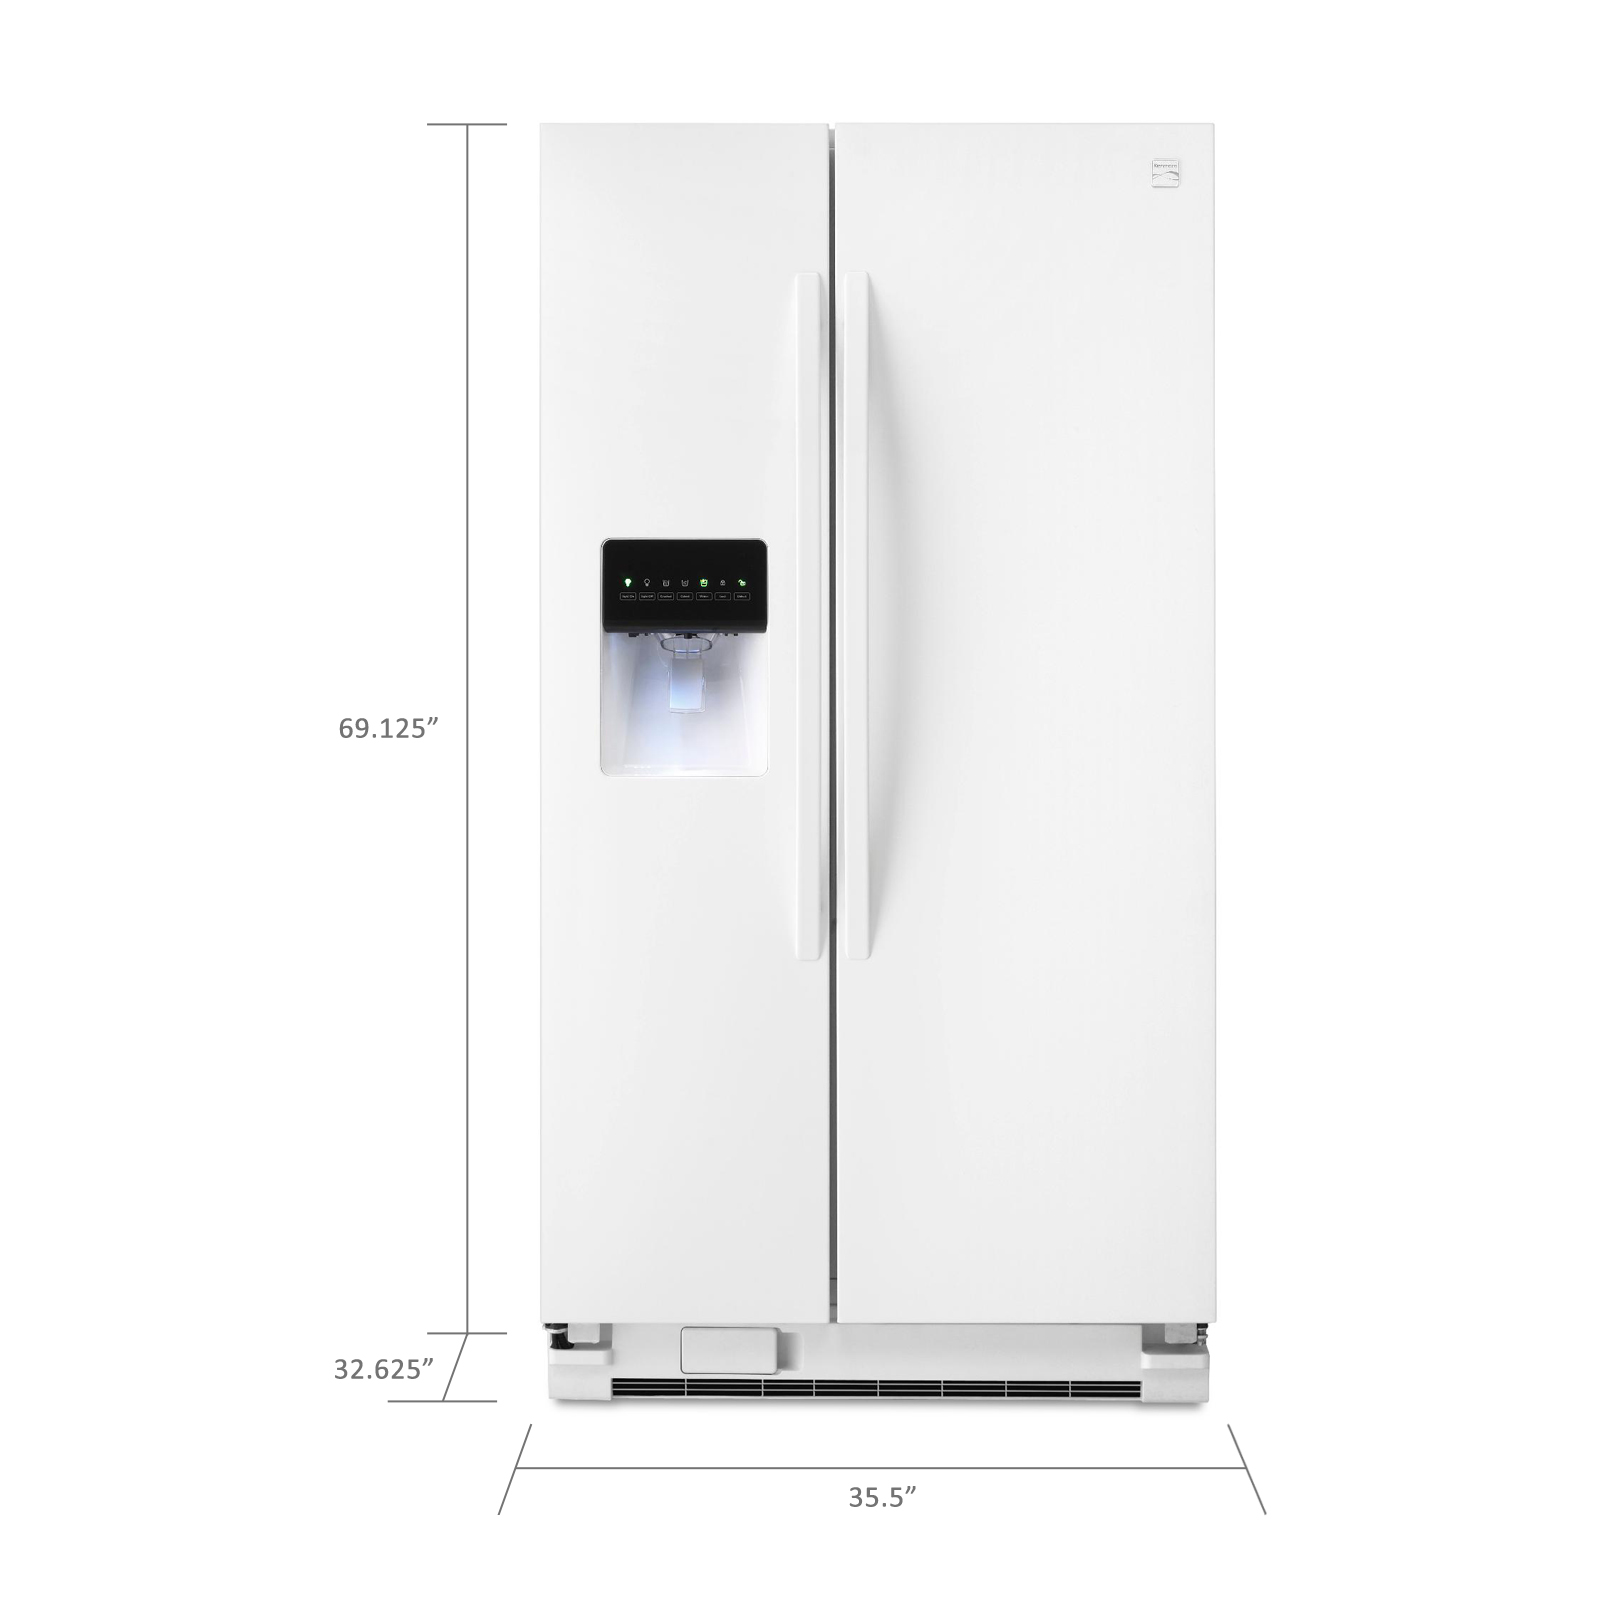 Kenmore 25  cu. ft. Side-by-Side Refrigerator - White